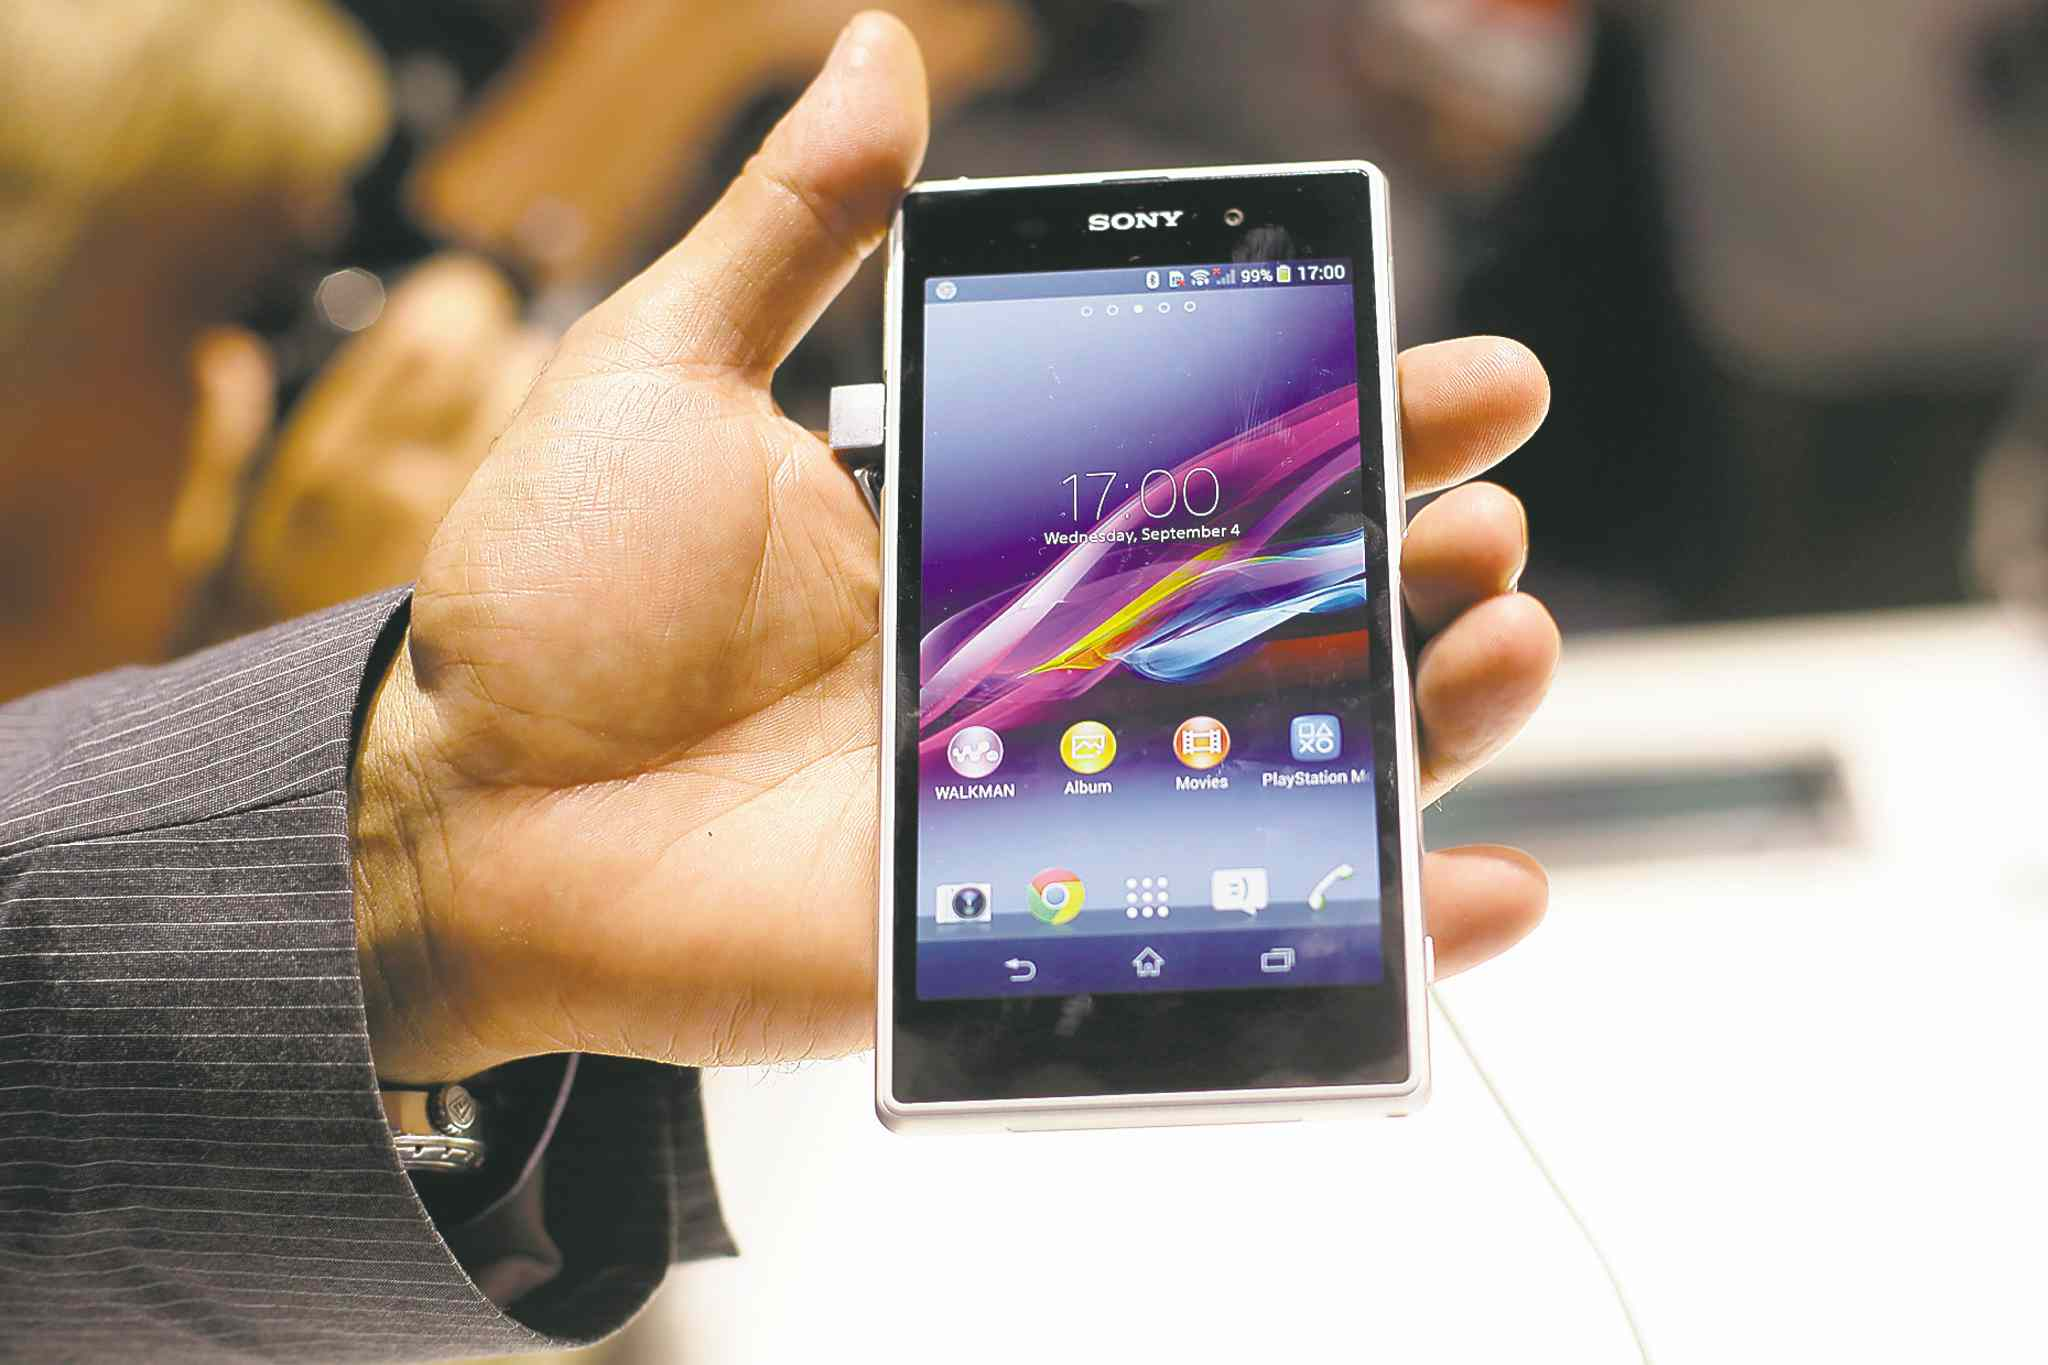 The new Sony Xperia Z1 smartphone (above). A hybrid device that's part tablet and part smartphone, called a phablet, is predicted to outsell tablets and gaming consoles next year.